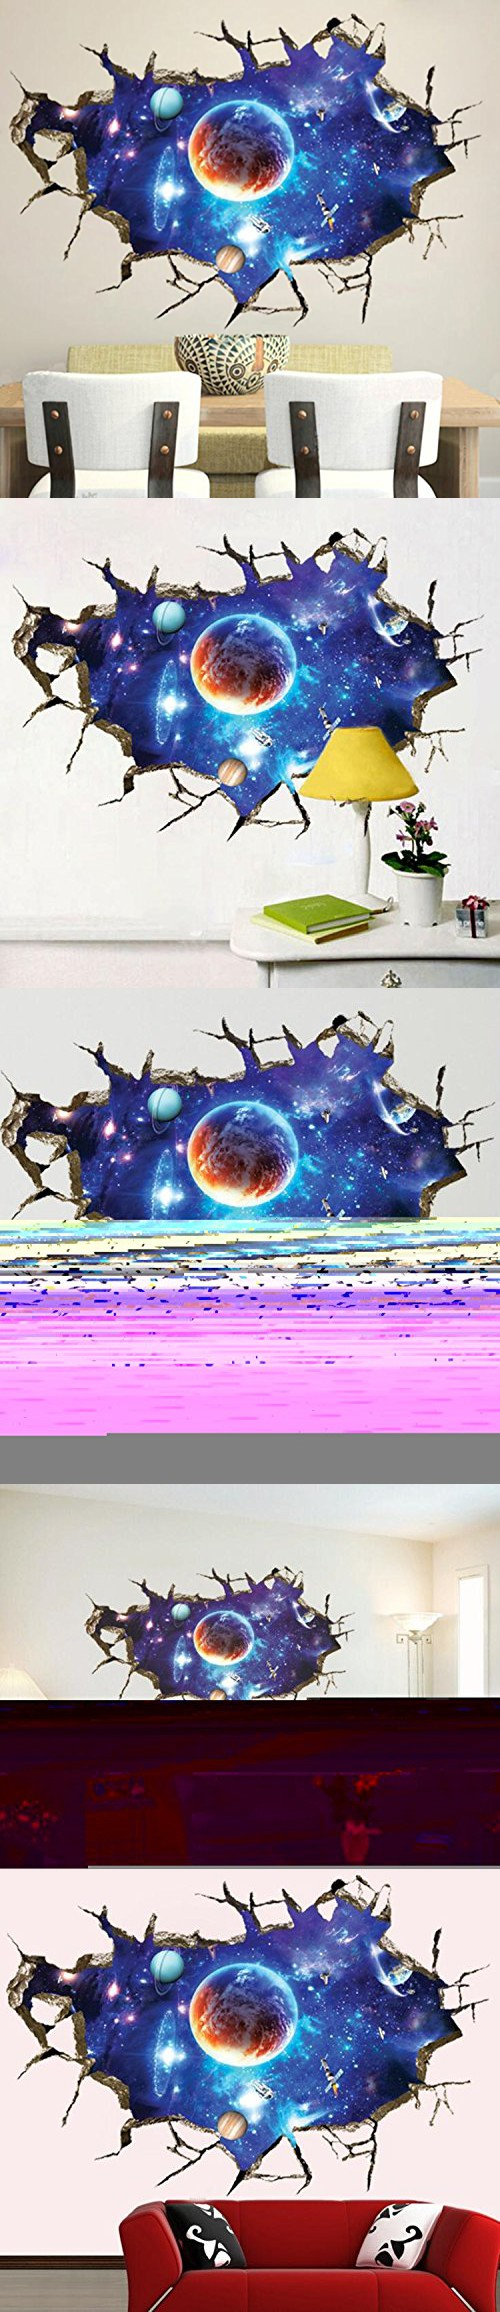 Highfs Removable 3d Cracked Wall Outer Space Stars Universe Planets Art Mural Vinyl Waterproof Wall Kids Room Wall Stickers Nursery Decals Wall Stickers Murals